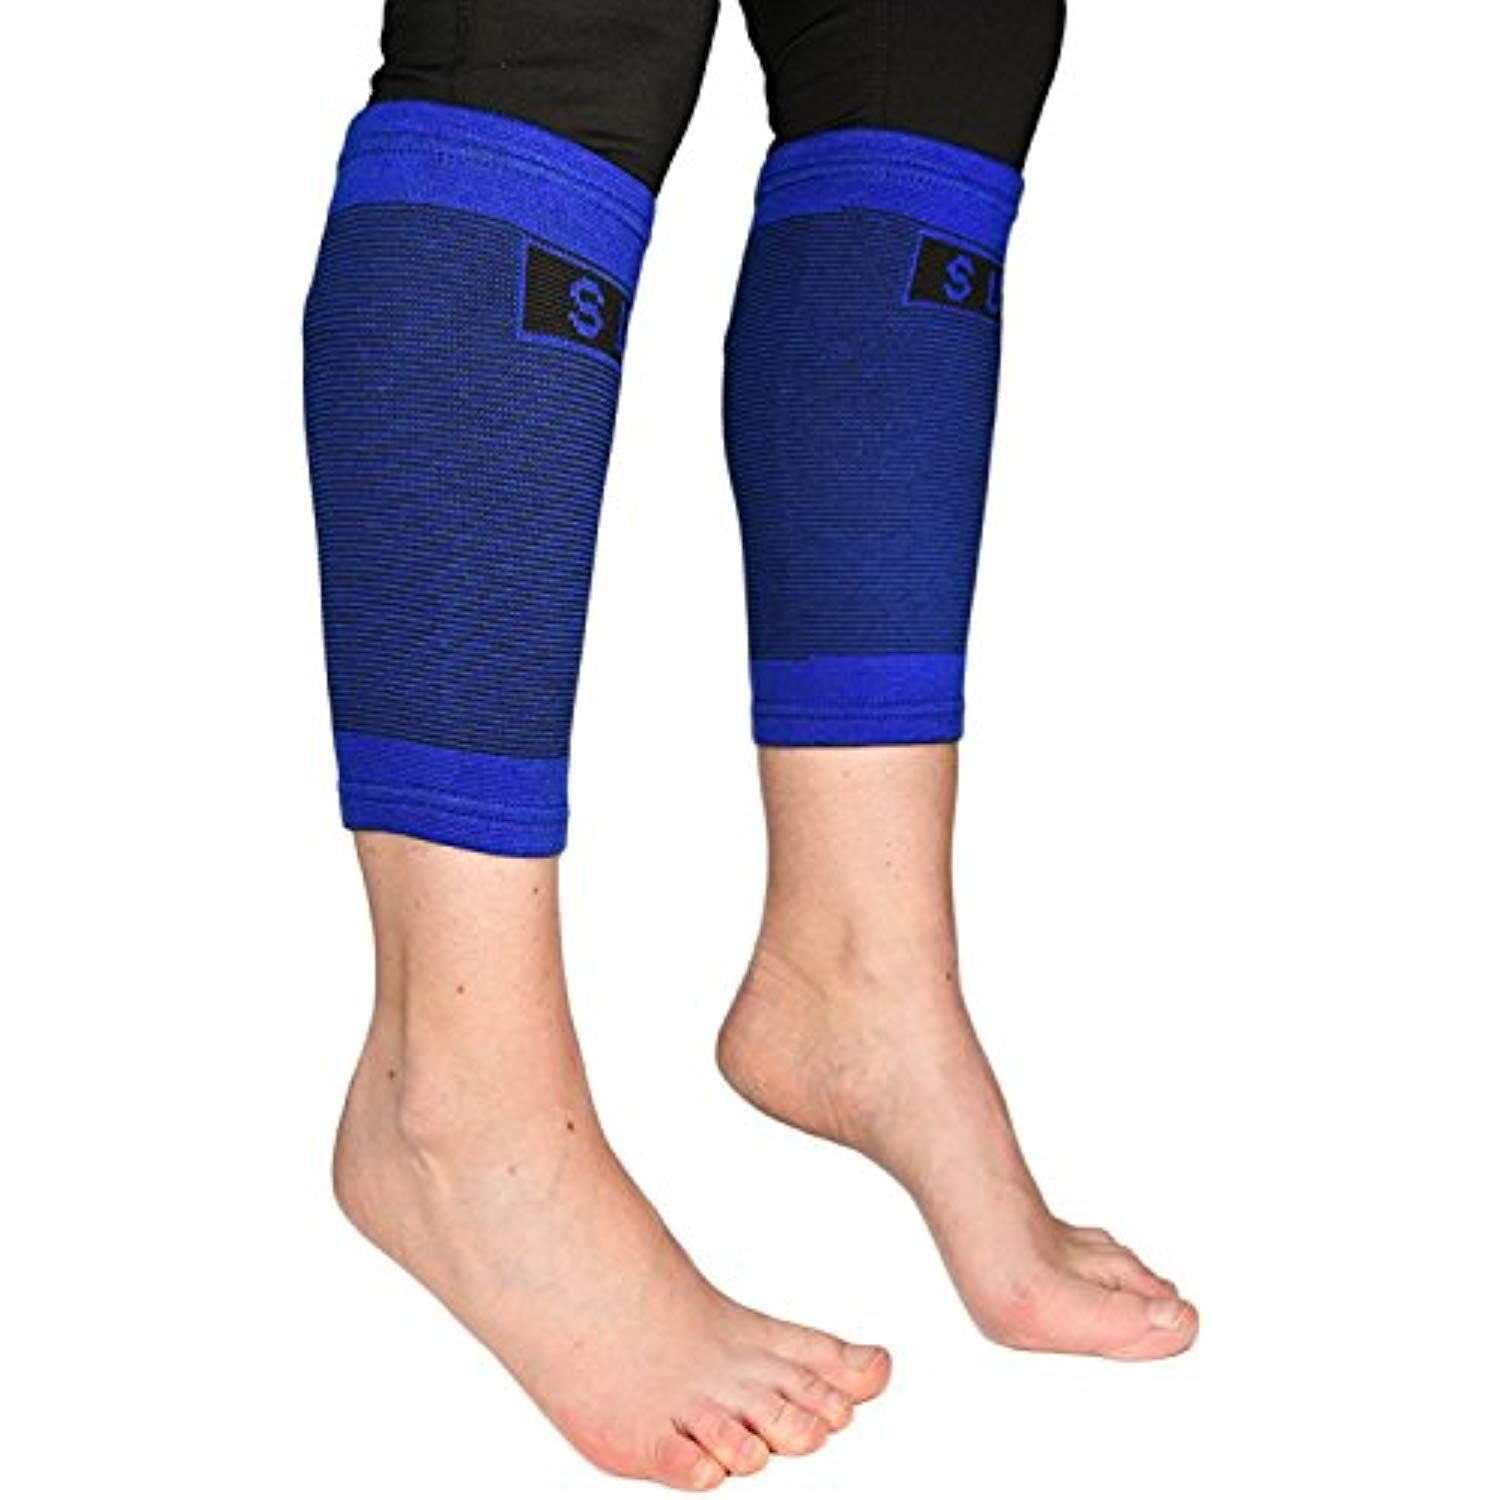 a09cae1f88 Varicose Veins · Braces · Calves · Baby Cows · 2 Professional Calf  Compression Sleeves By Susama - 1 Size Fits All - Best for Shin